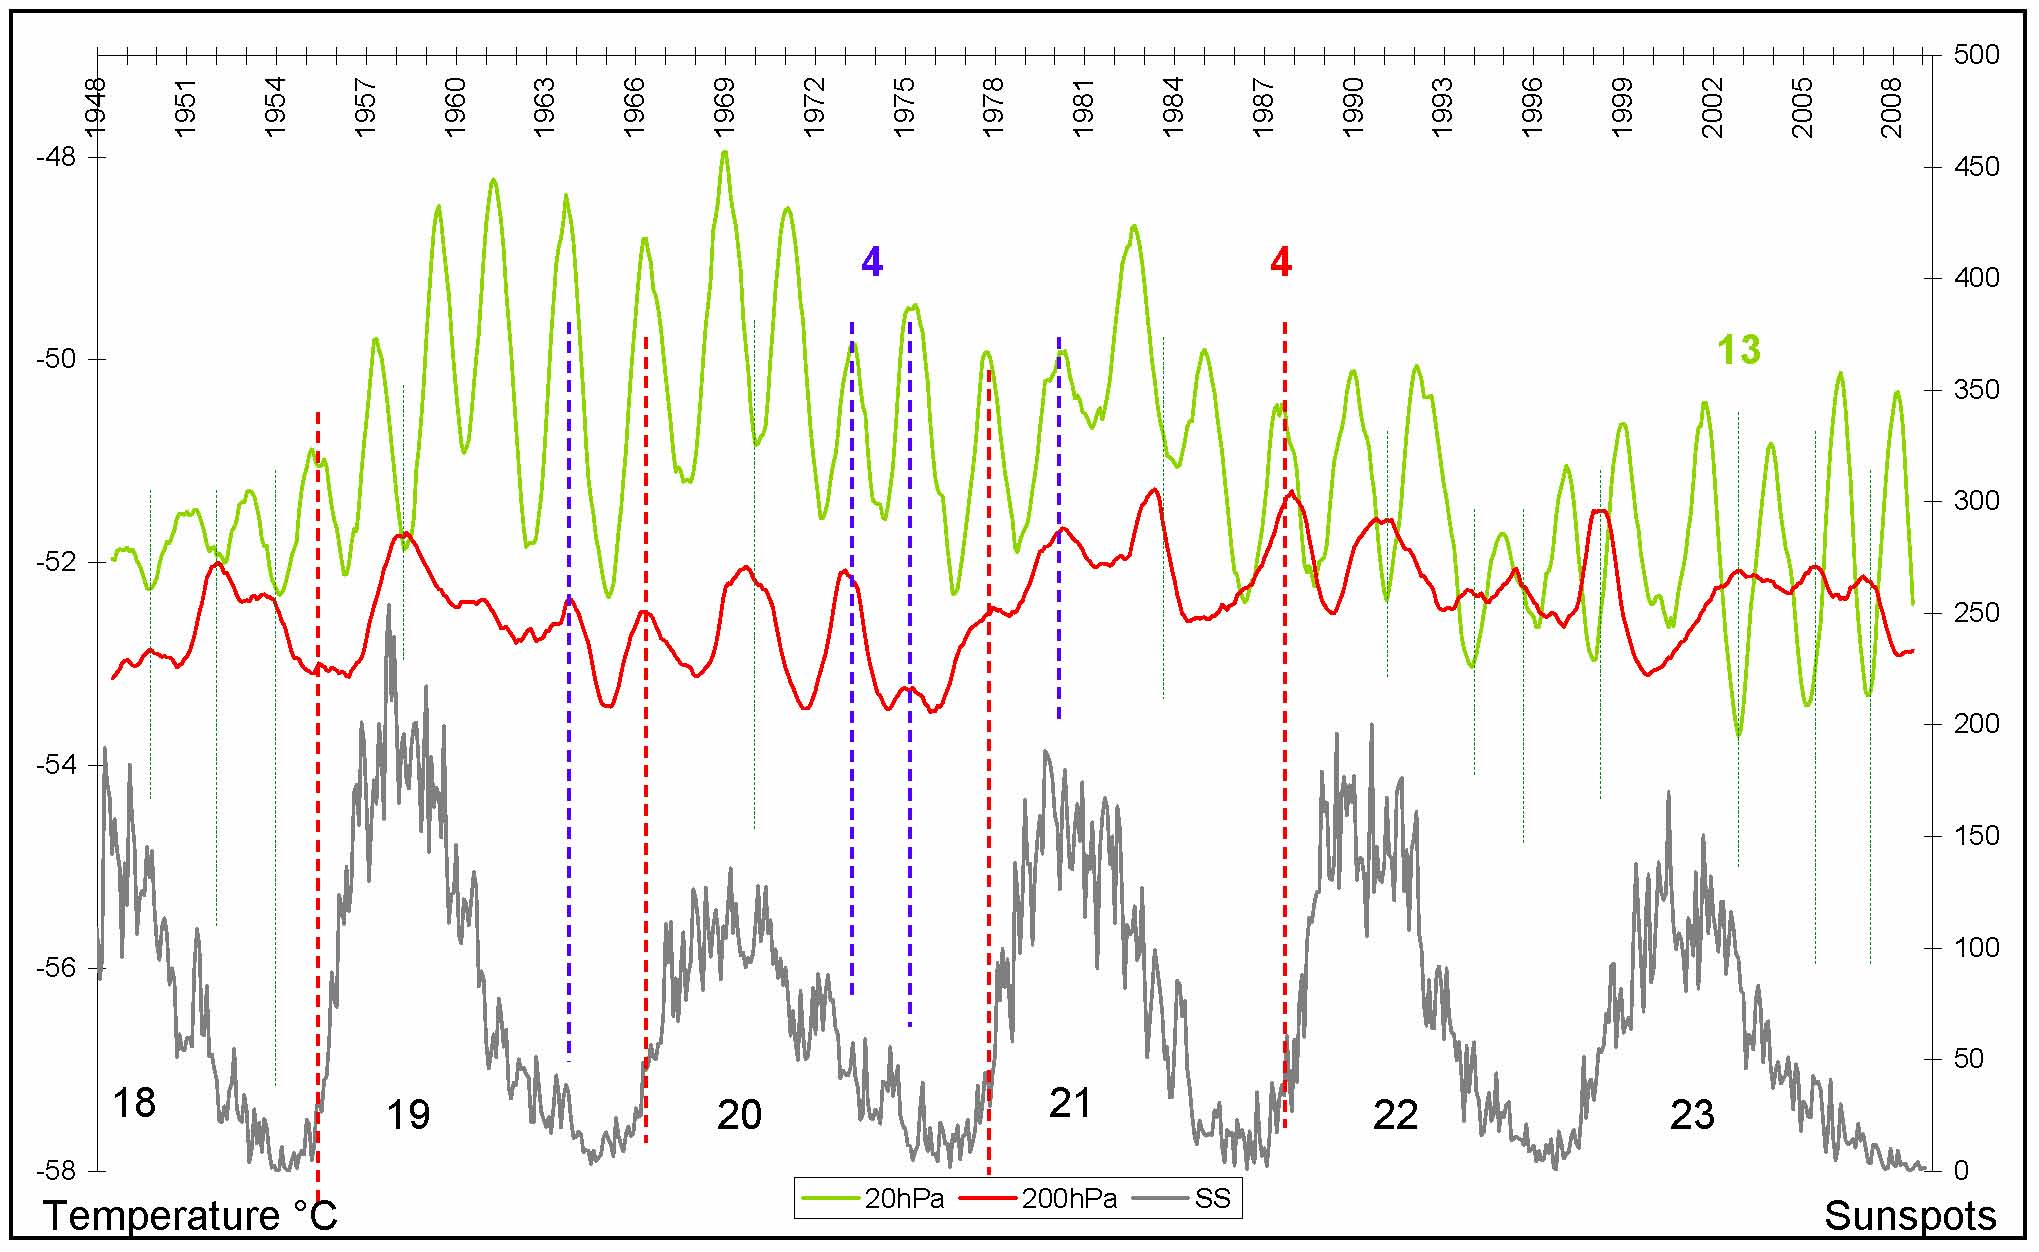 Fig. 2 The QBO at 20hPa compared to temperature at 200hPa in the upper troposphere over five and a half solar cycles